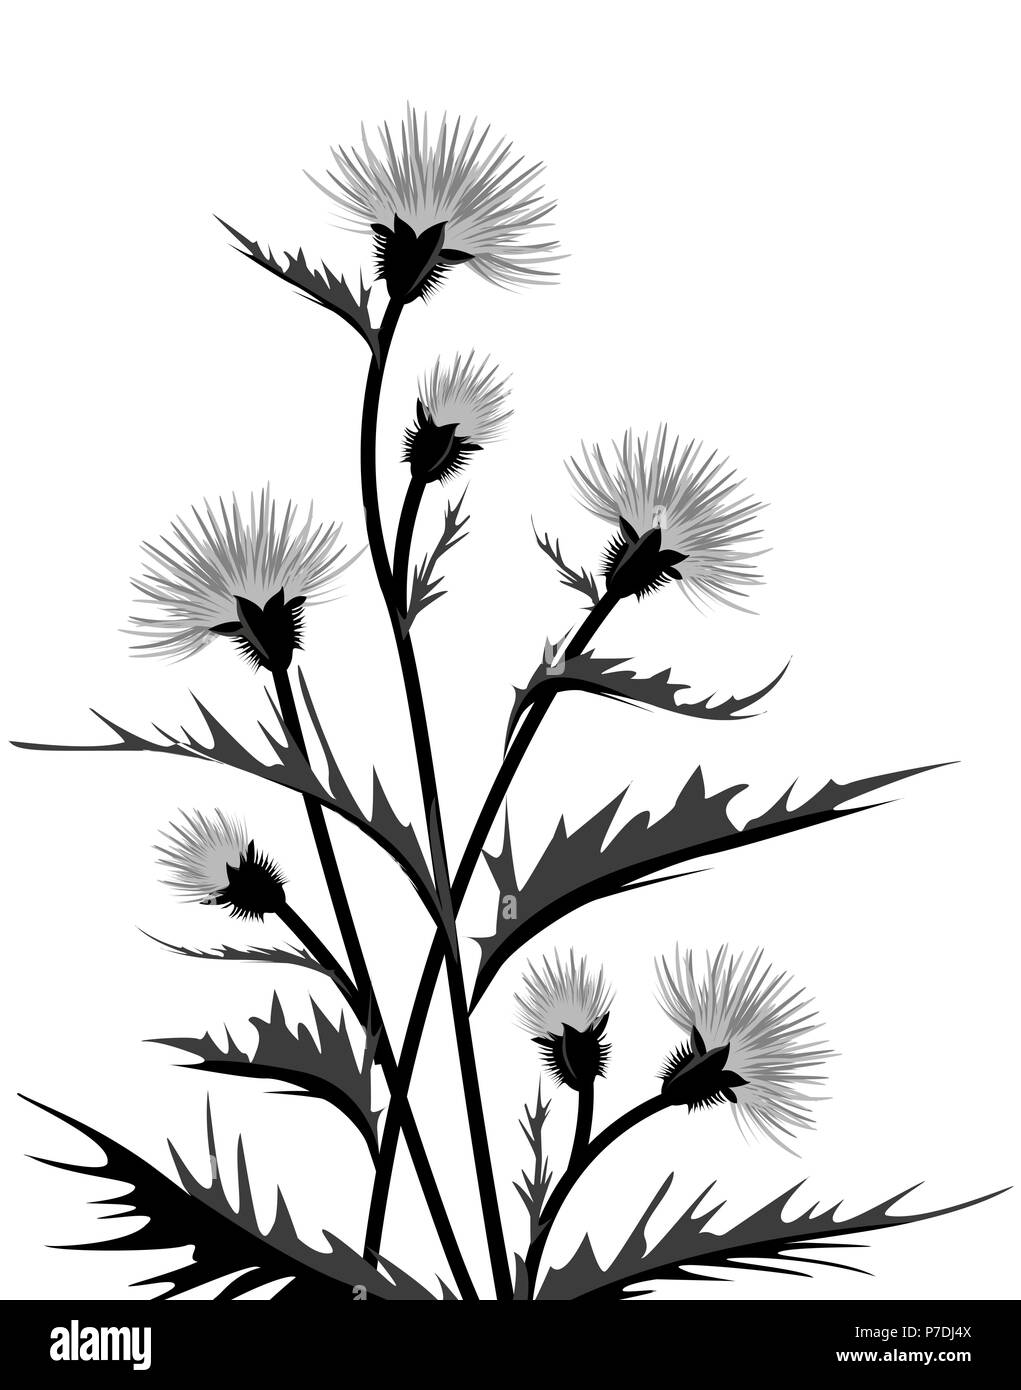 Vector Illustration of thistle with leaves. Floral background - Stock Image